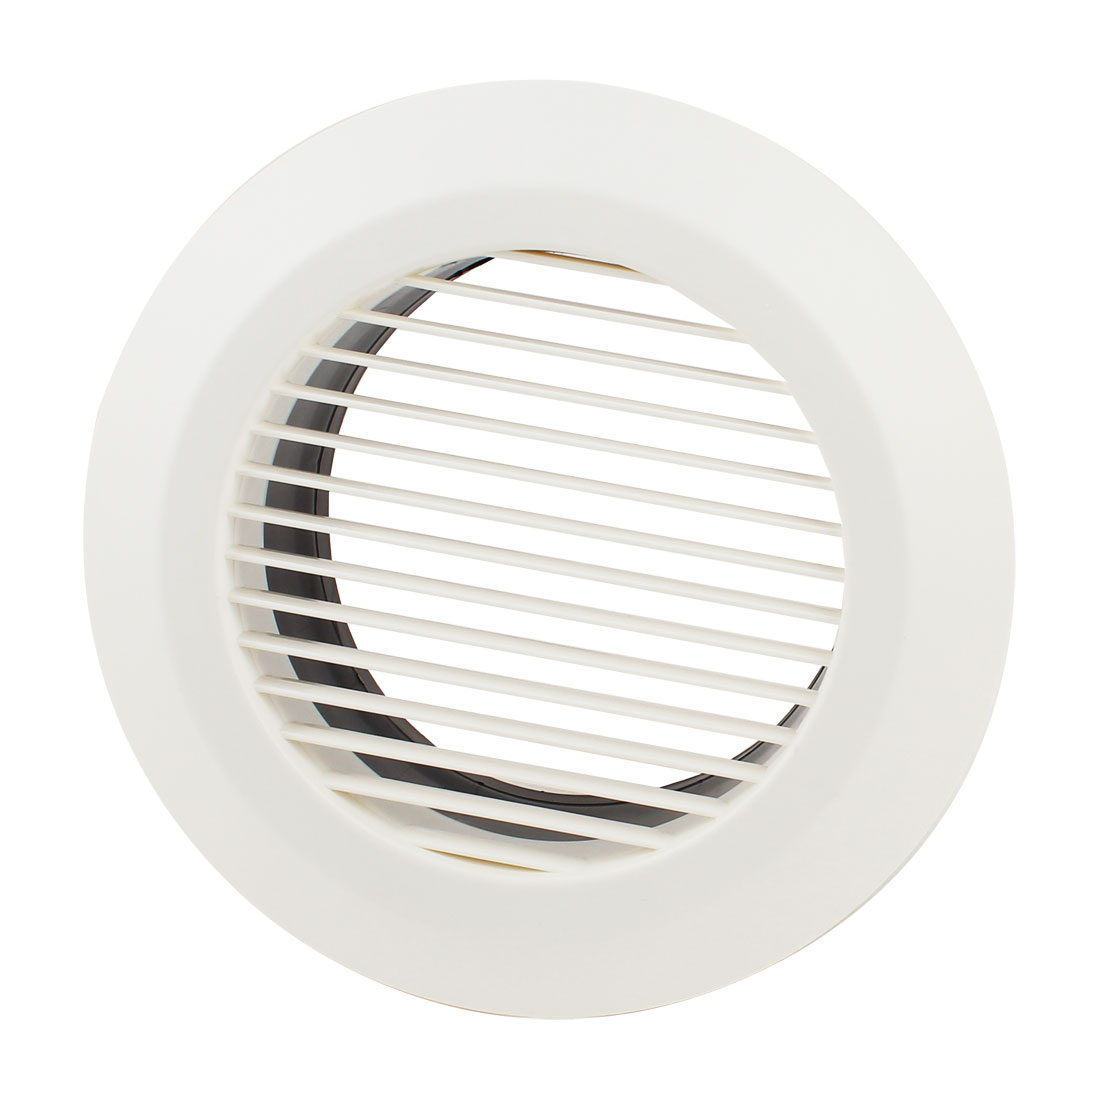 Black White 150mm OD Straight Round Air Grilles Diffusers for Kitchen